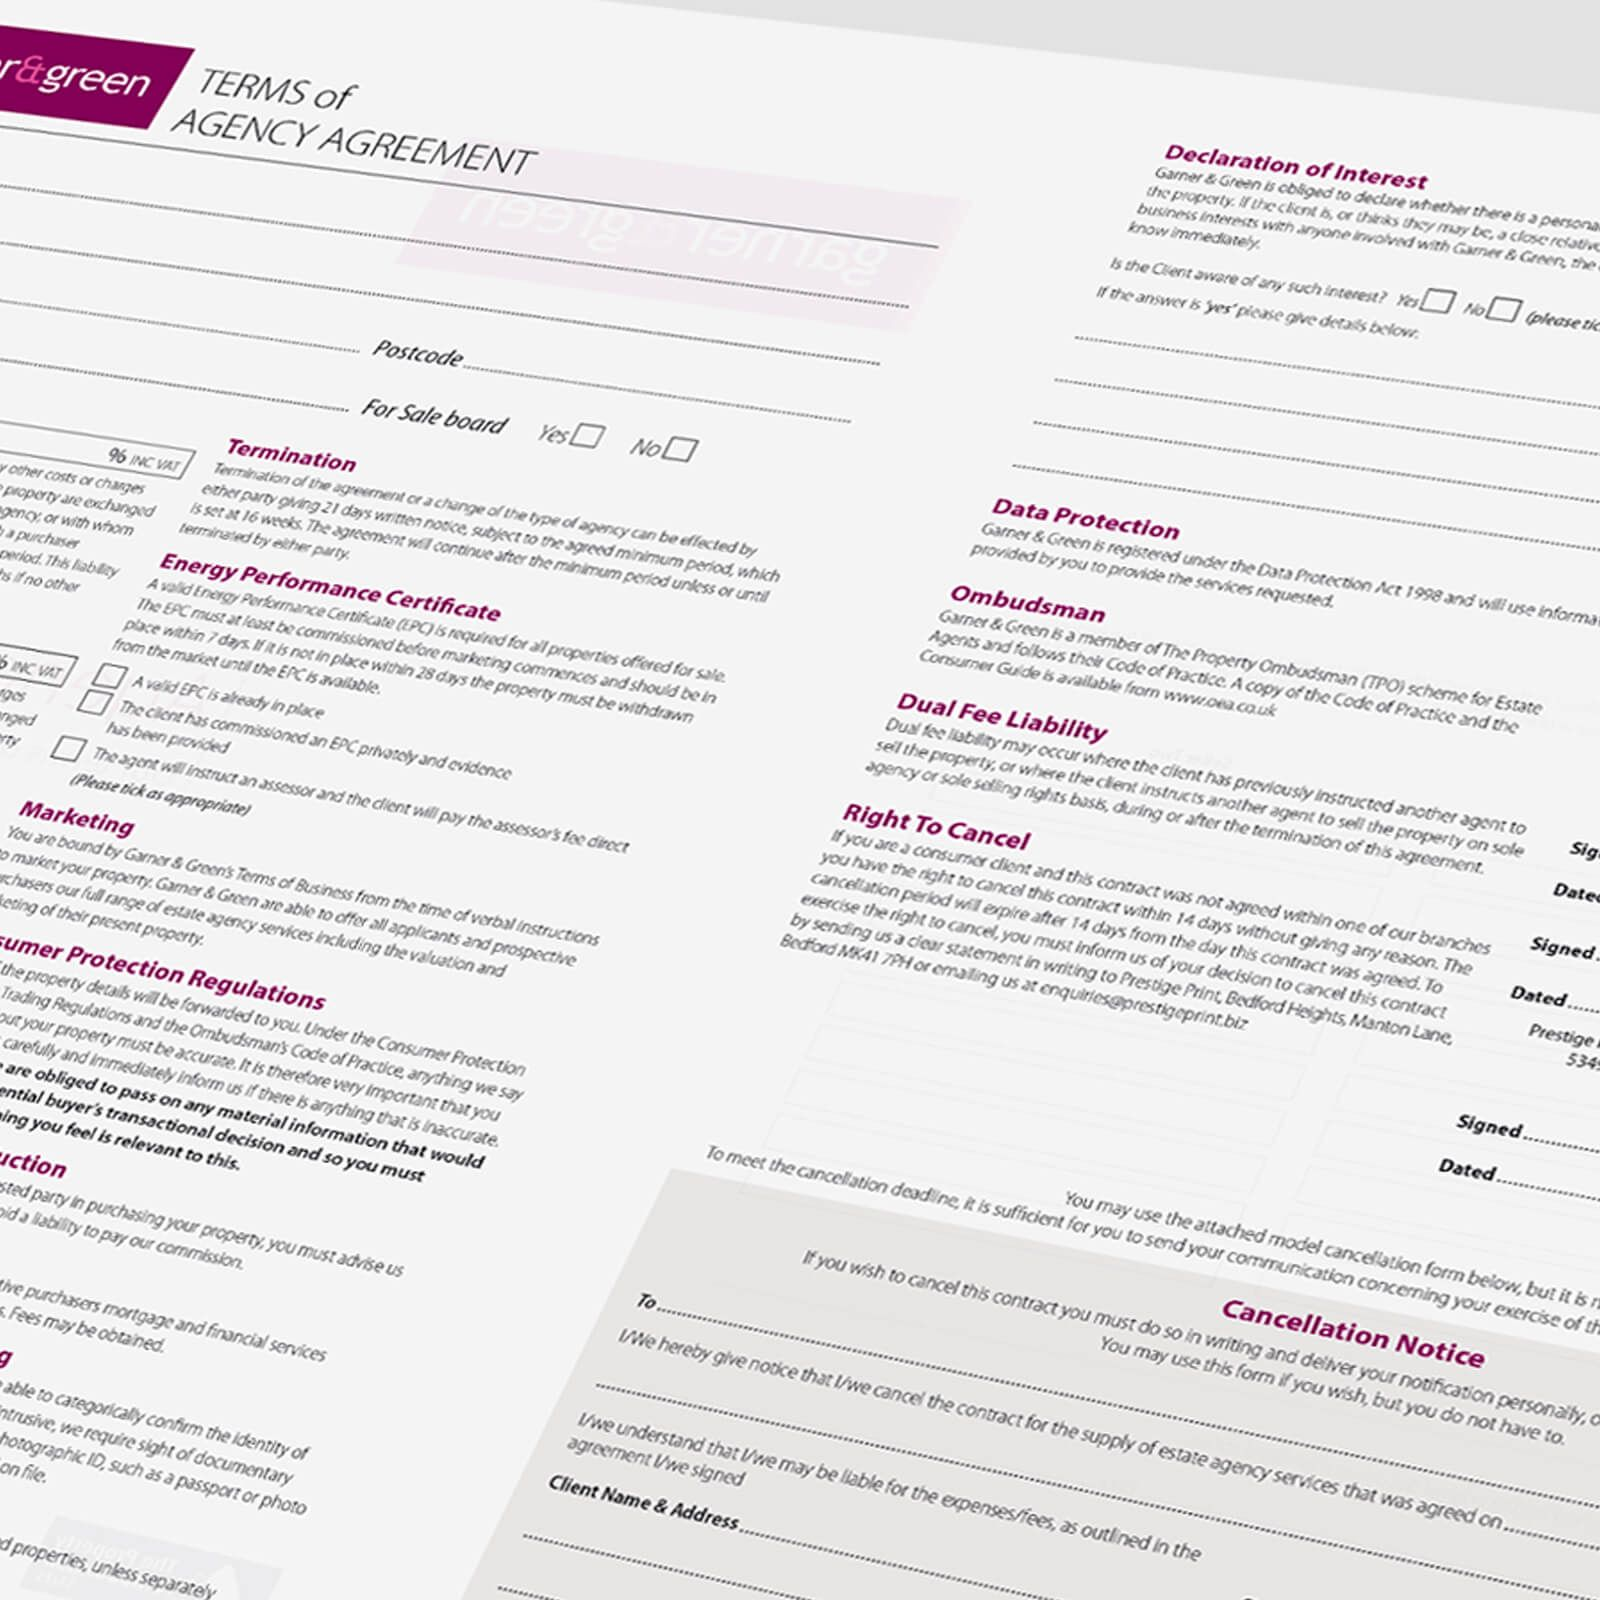 Estate agents agreement template FeatureHead NCR Sales 02 | Front ...